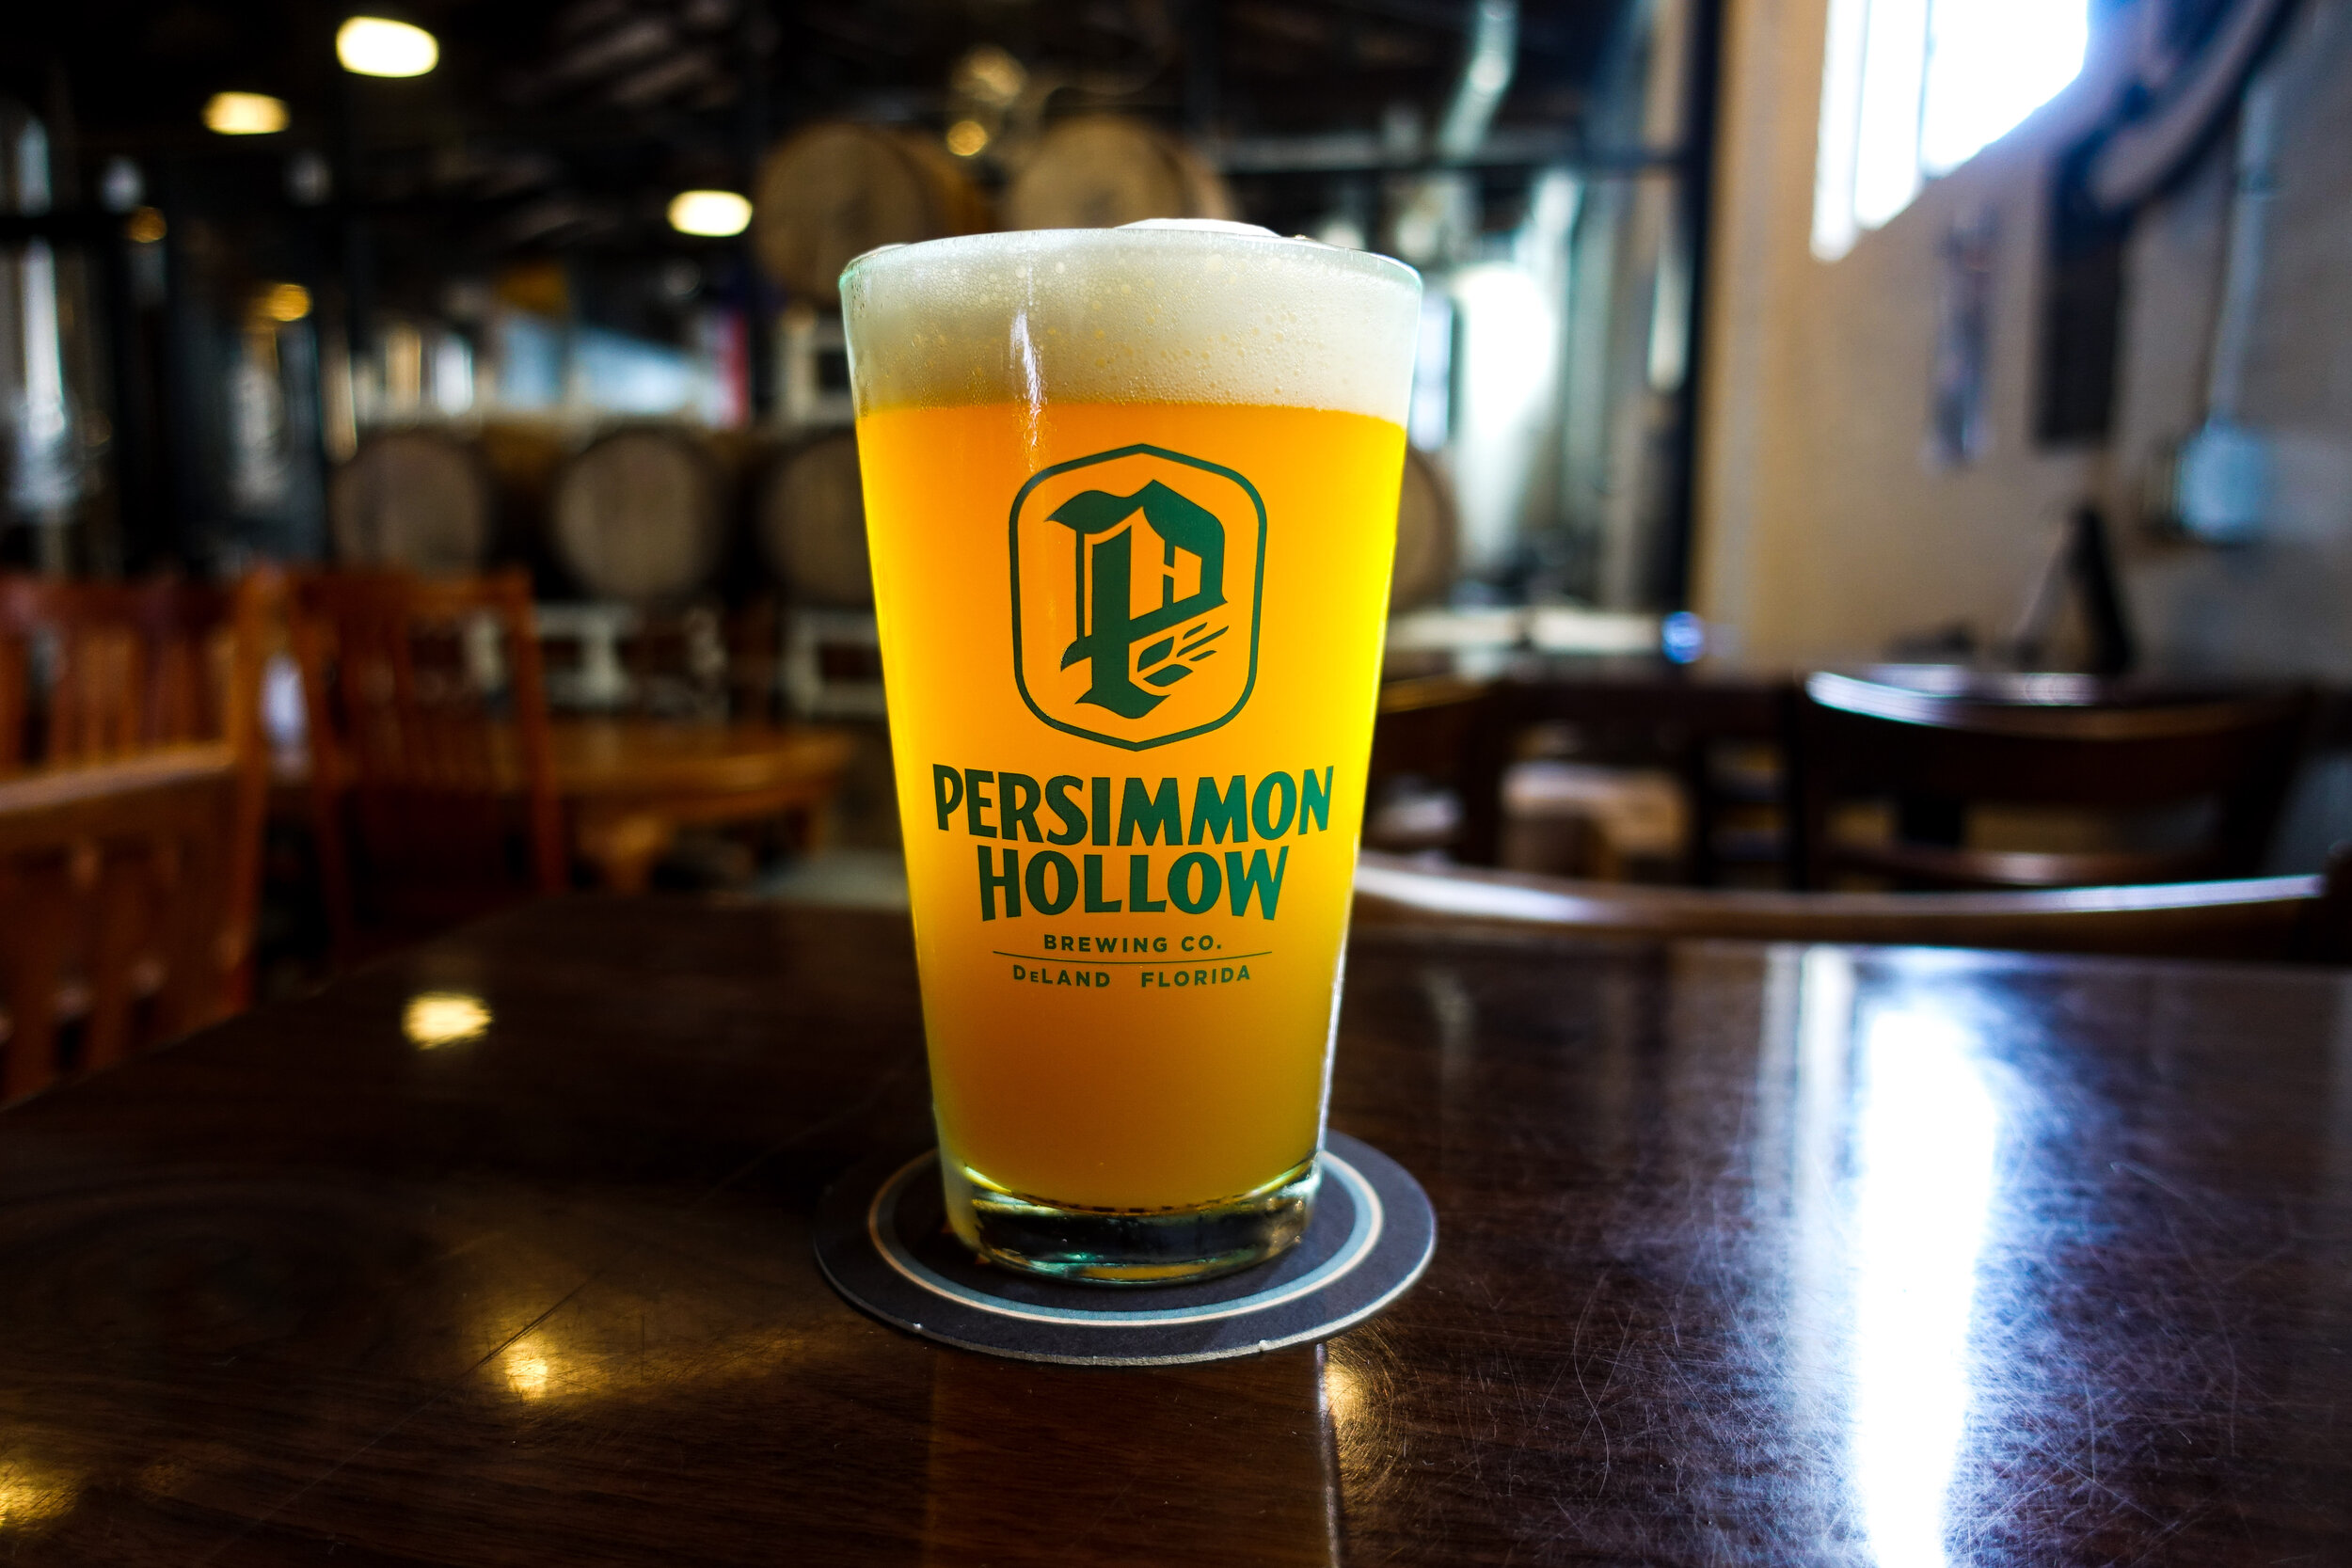 Pictured: Persimmon Hollow's Gypsy Hiker New England Style IPA.